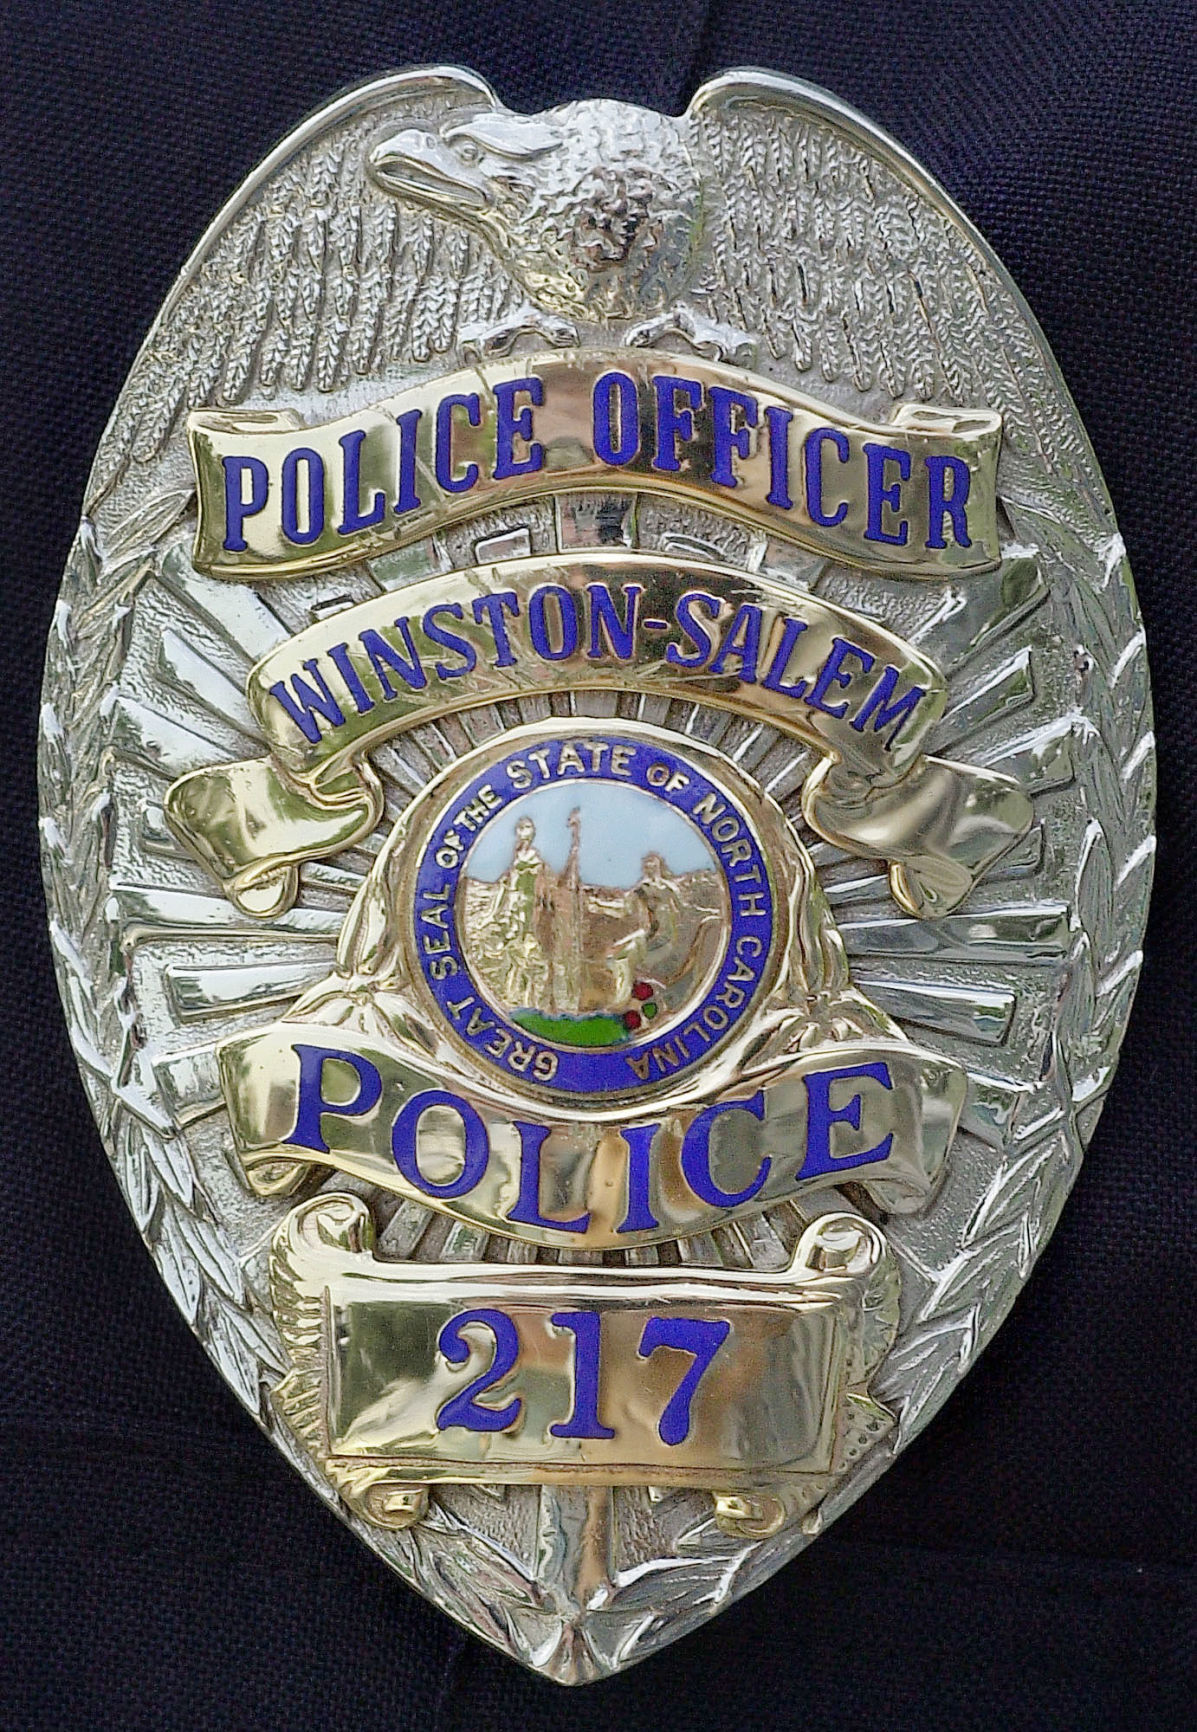 Winston-Salem police may get own national TV show | Winston Salem Journal